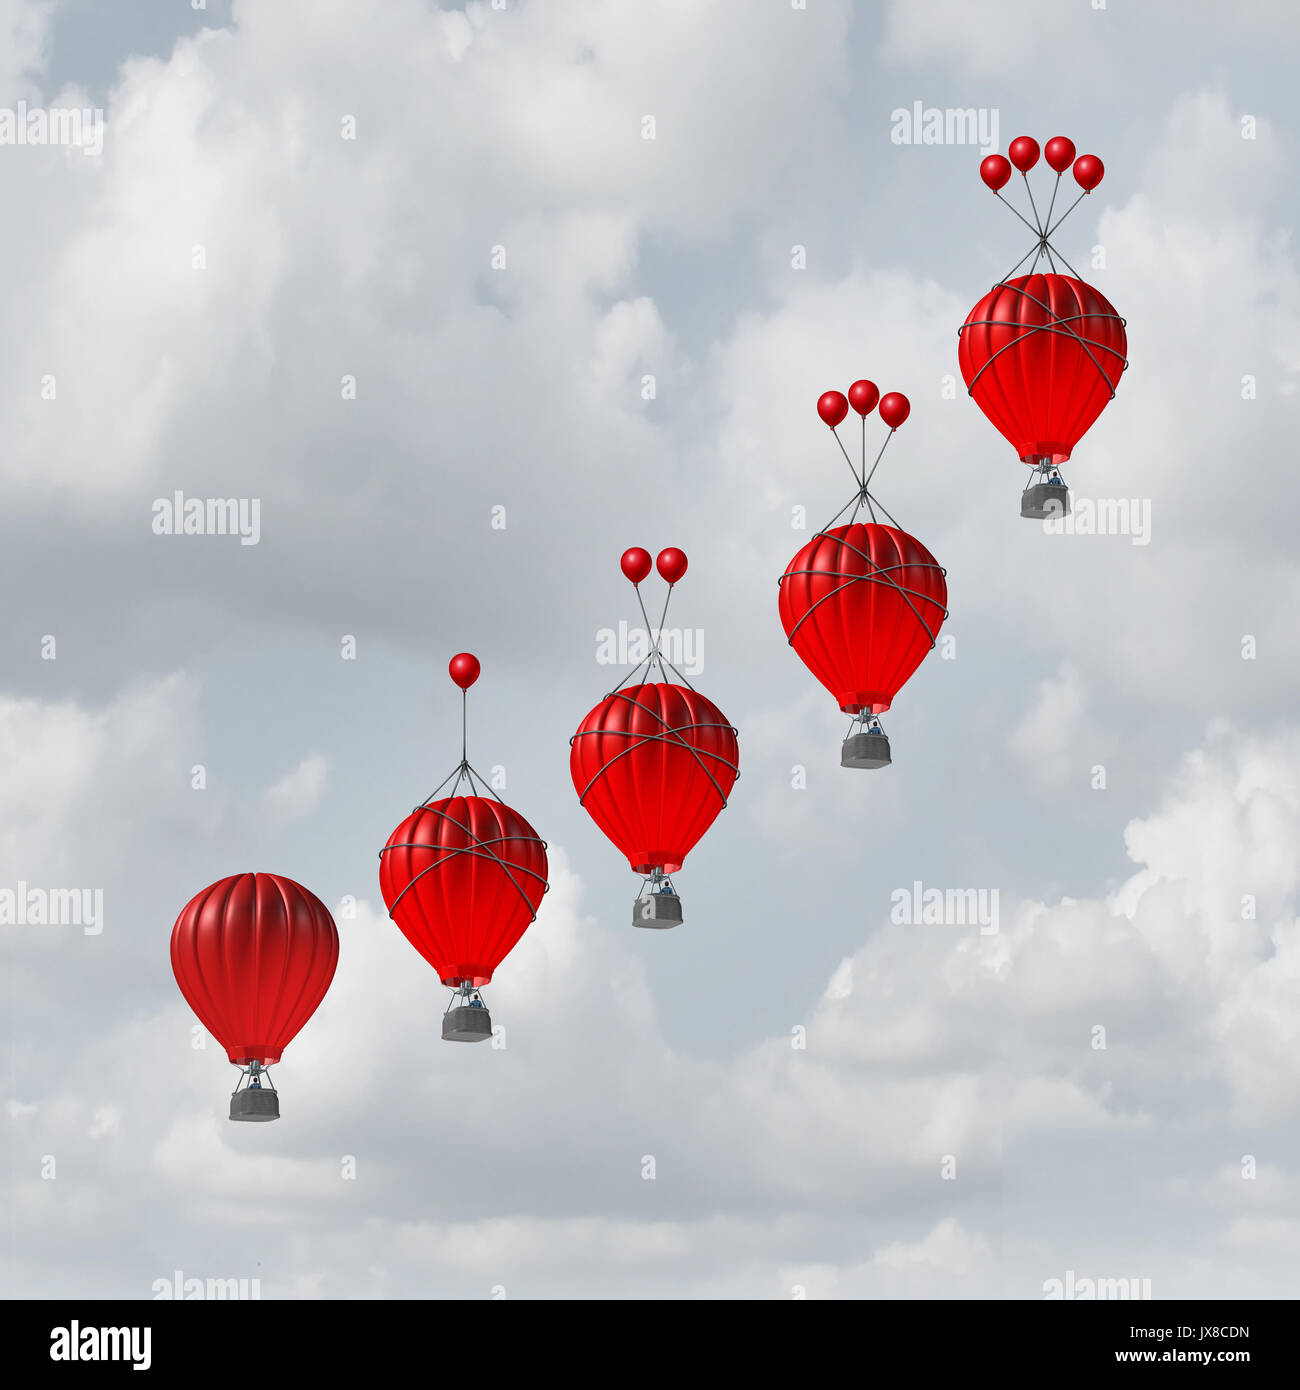 Competitive advantage increase concept as a group of rising hot air balloons with increasing amount of assistance to beat the competition. - Stock Image